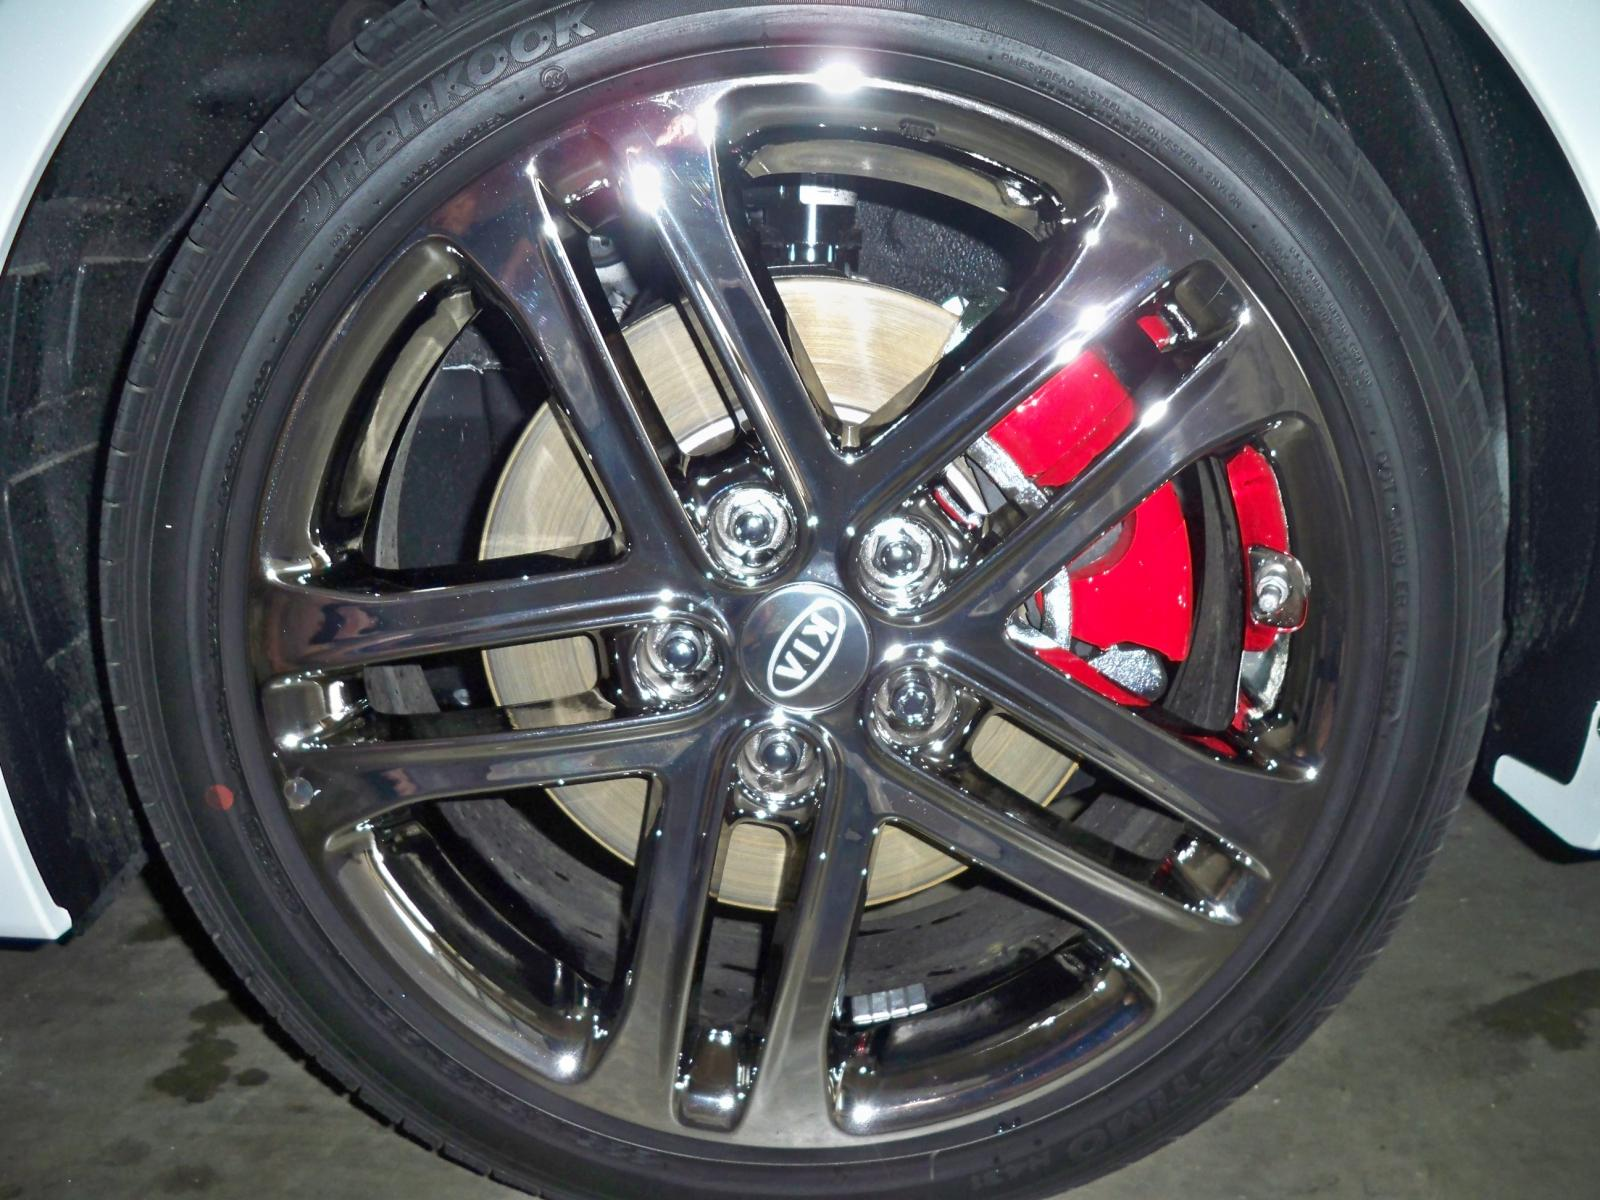 2013 SXL Chrome wheels and tires - stock OEM-101_2332.jpg